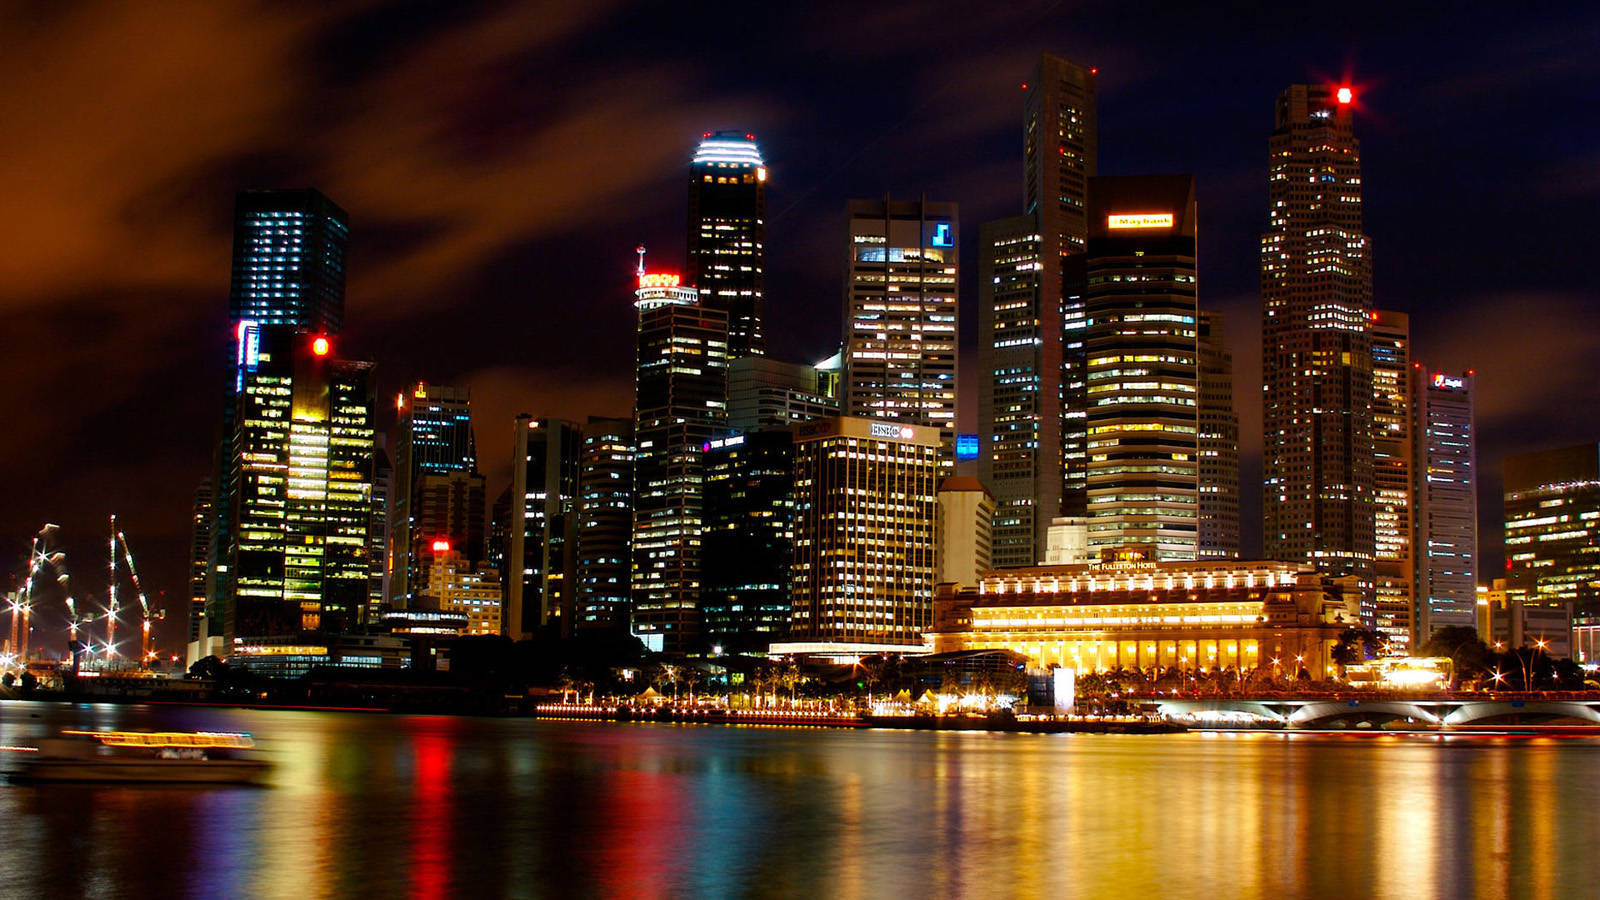 Singapore port city at night wallpaper city wallpaper 1600x900